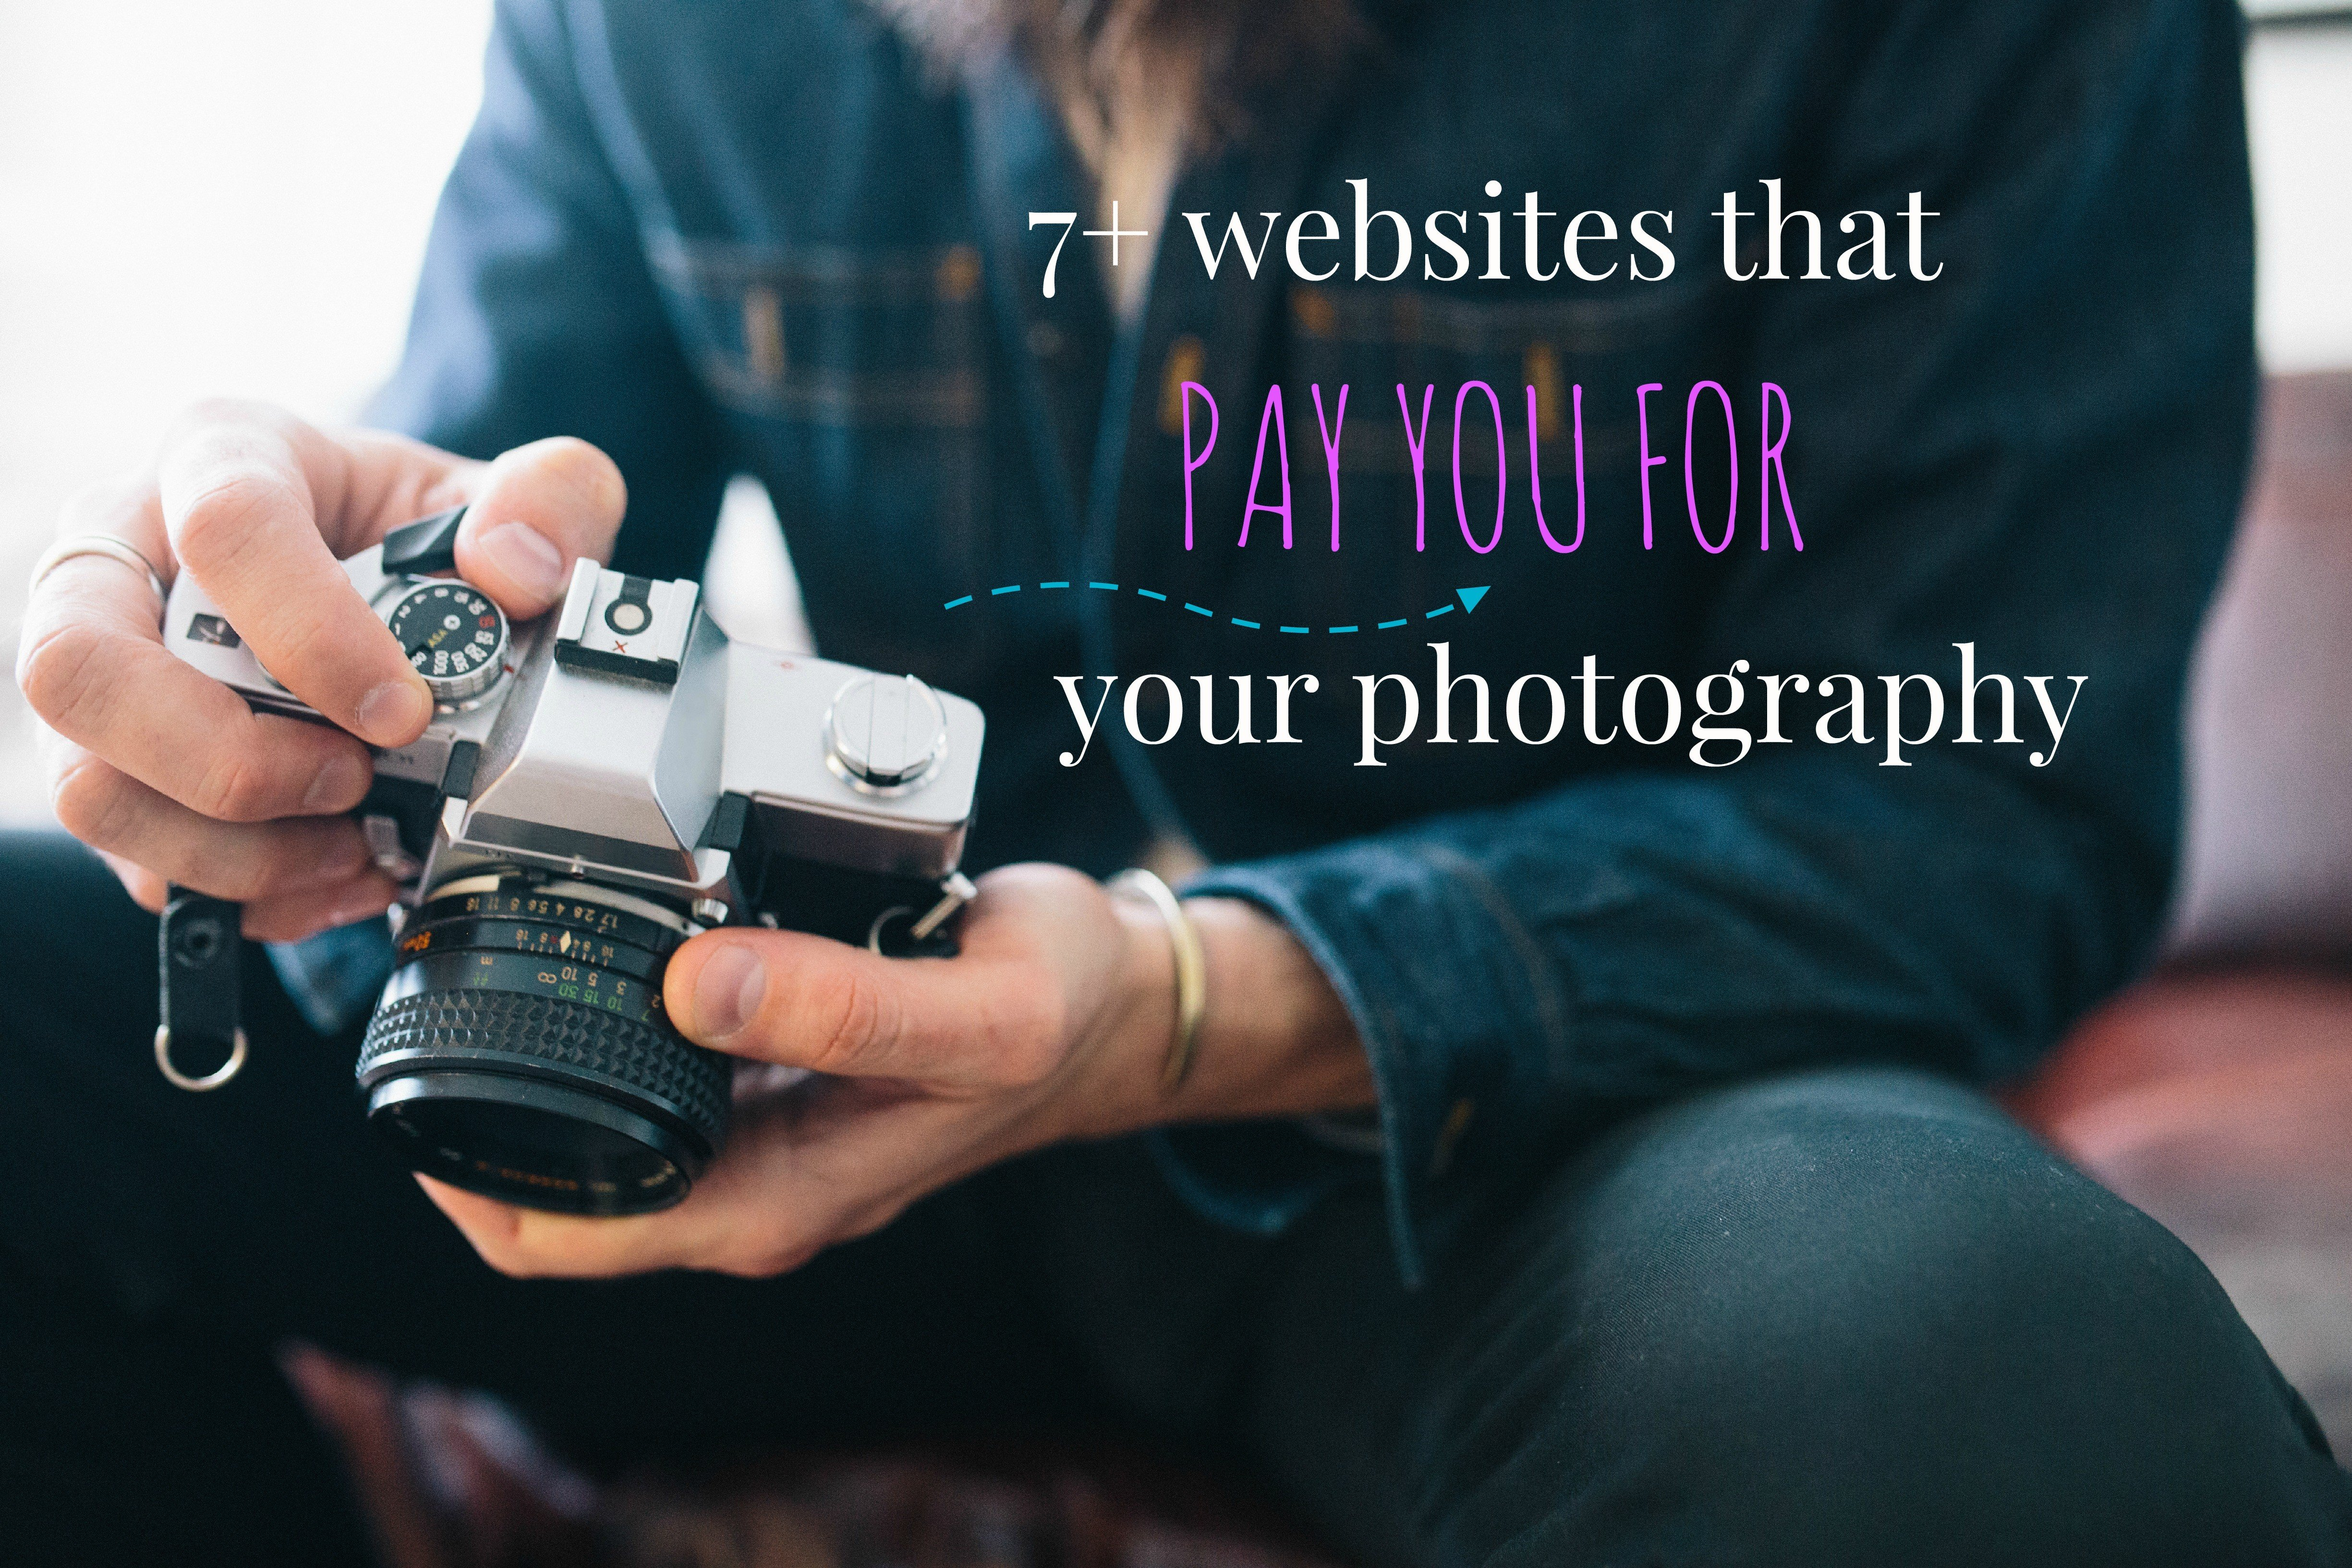 how to get paid for photography